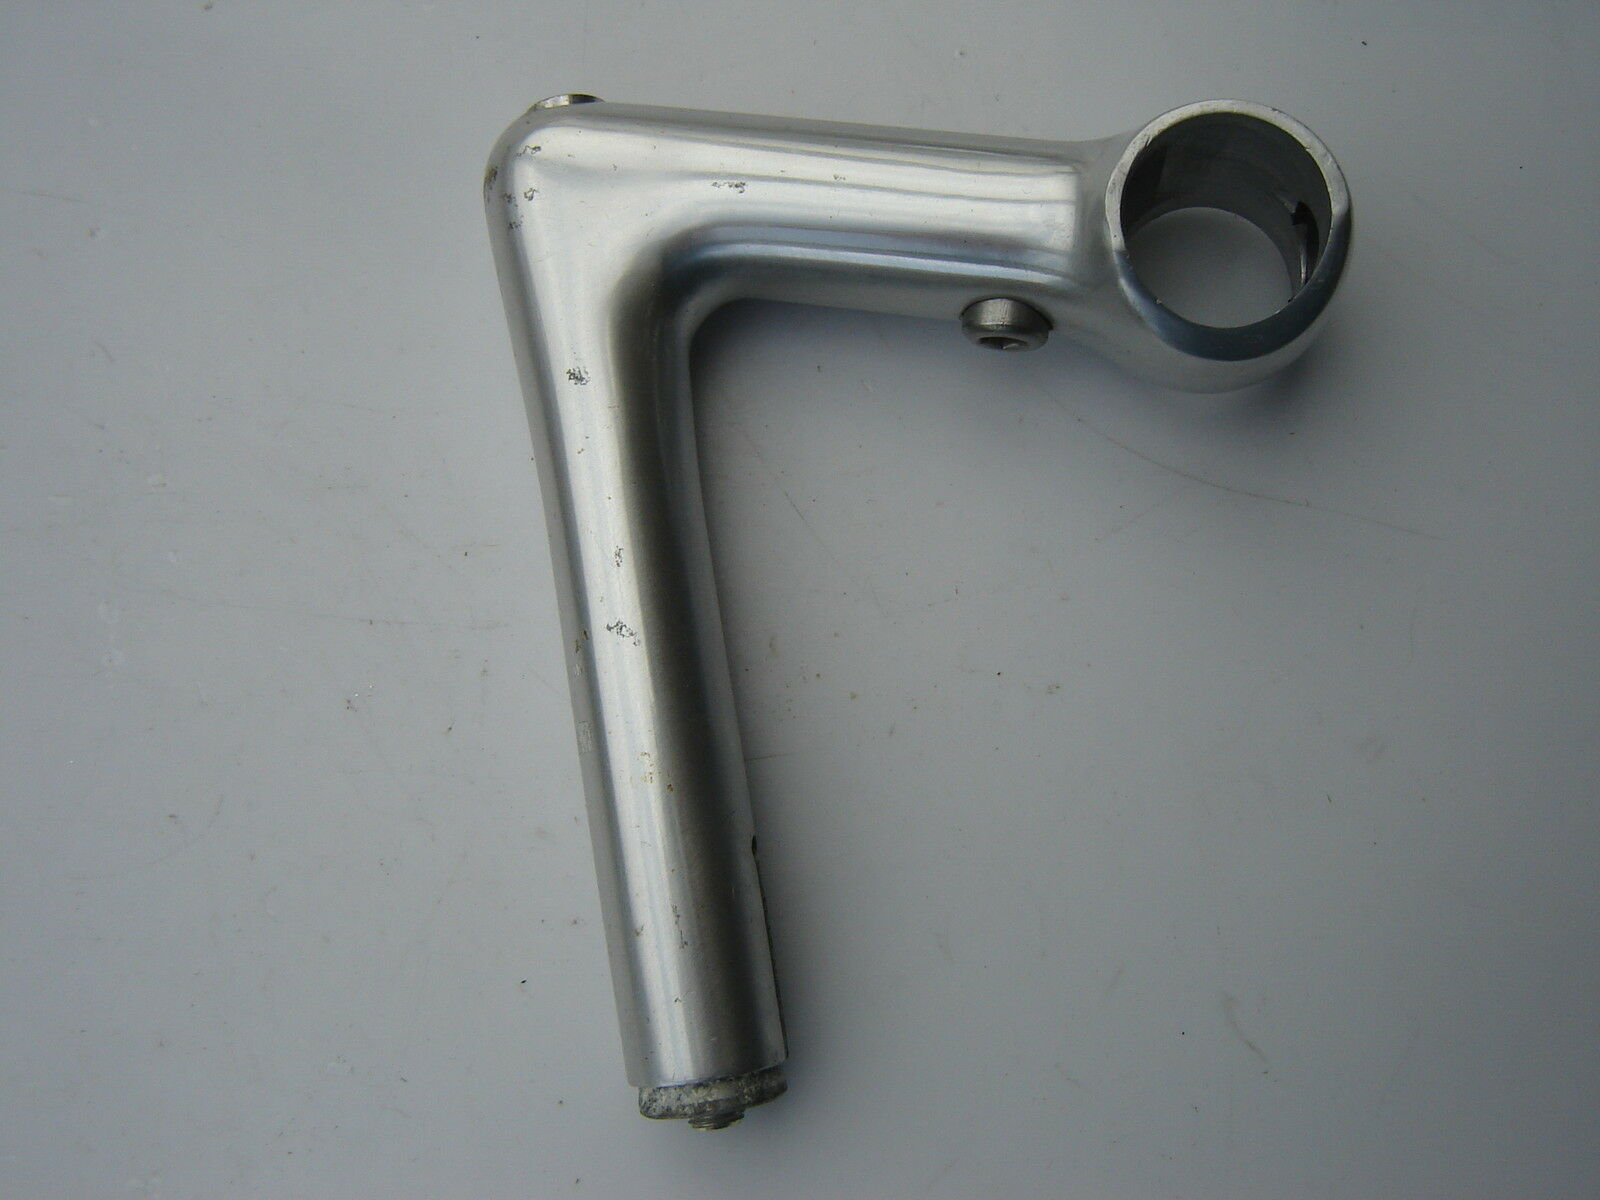 CINELLI 1R STEM Dimensione 95 - NOS